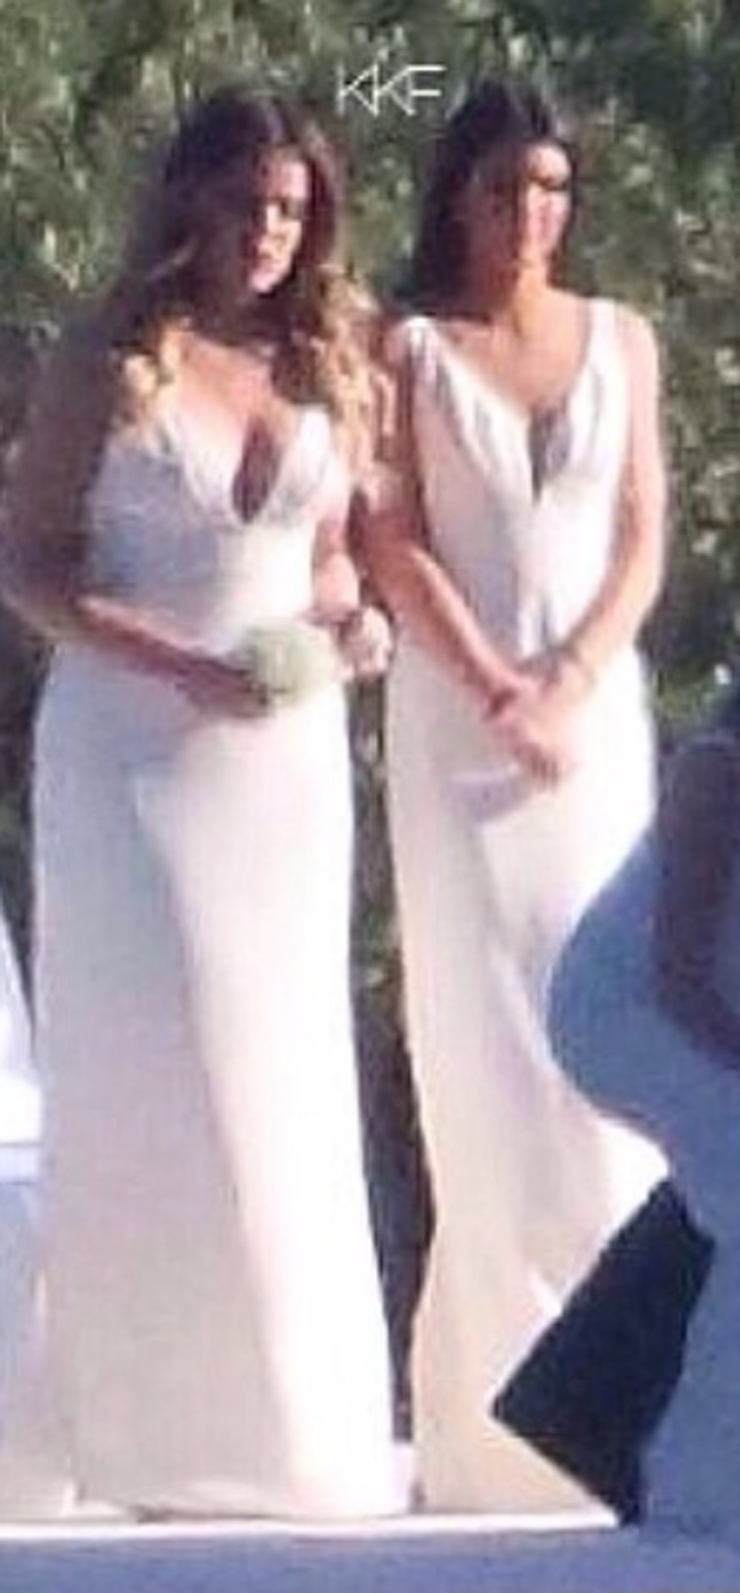 What did kendall and kylie wear to kims wedding the bridesmaid image instagram diamondpot ombrellifo Image collections